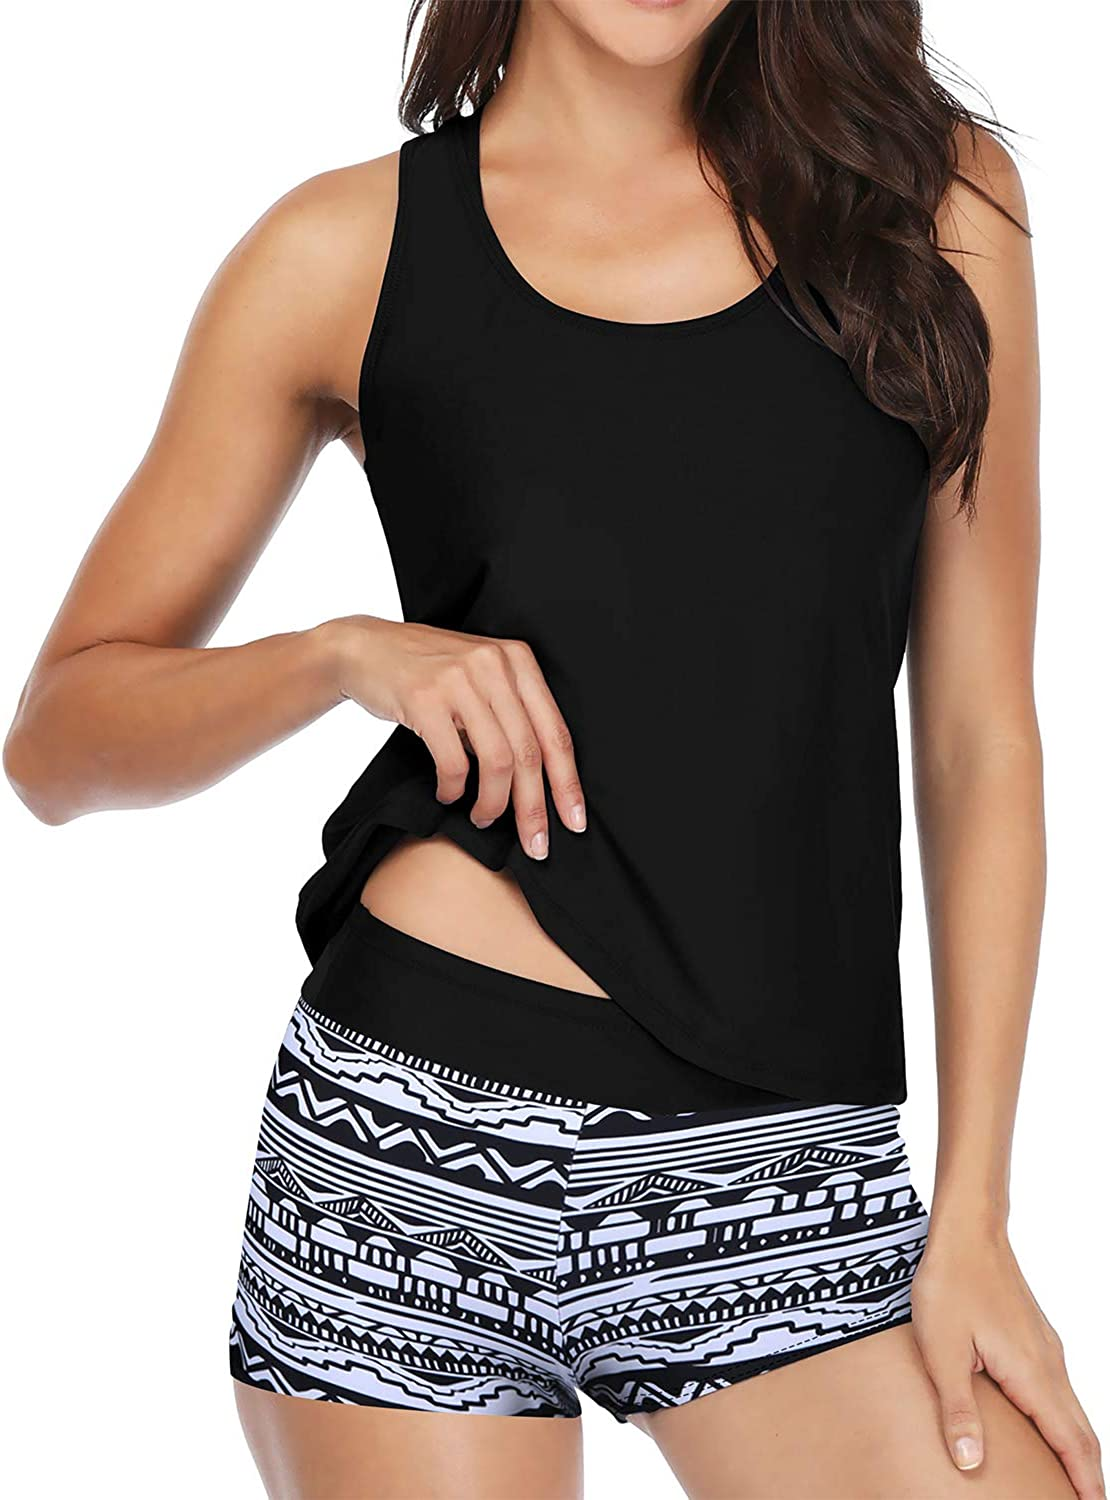 Yonique Athletic 3 Piece Tankini Swimsuit for Women Modest Swimwear with Boyshort Tank Top with Bra and Shorts